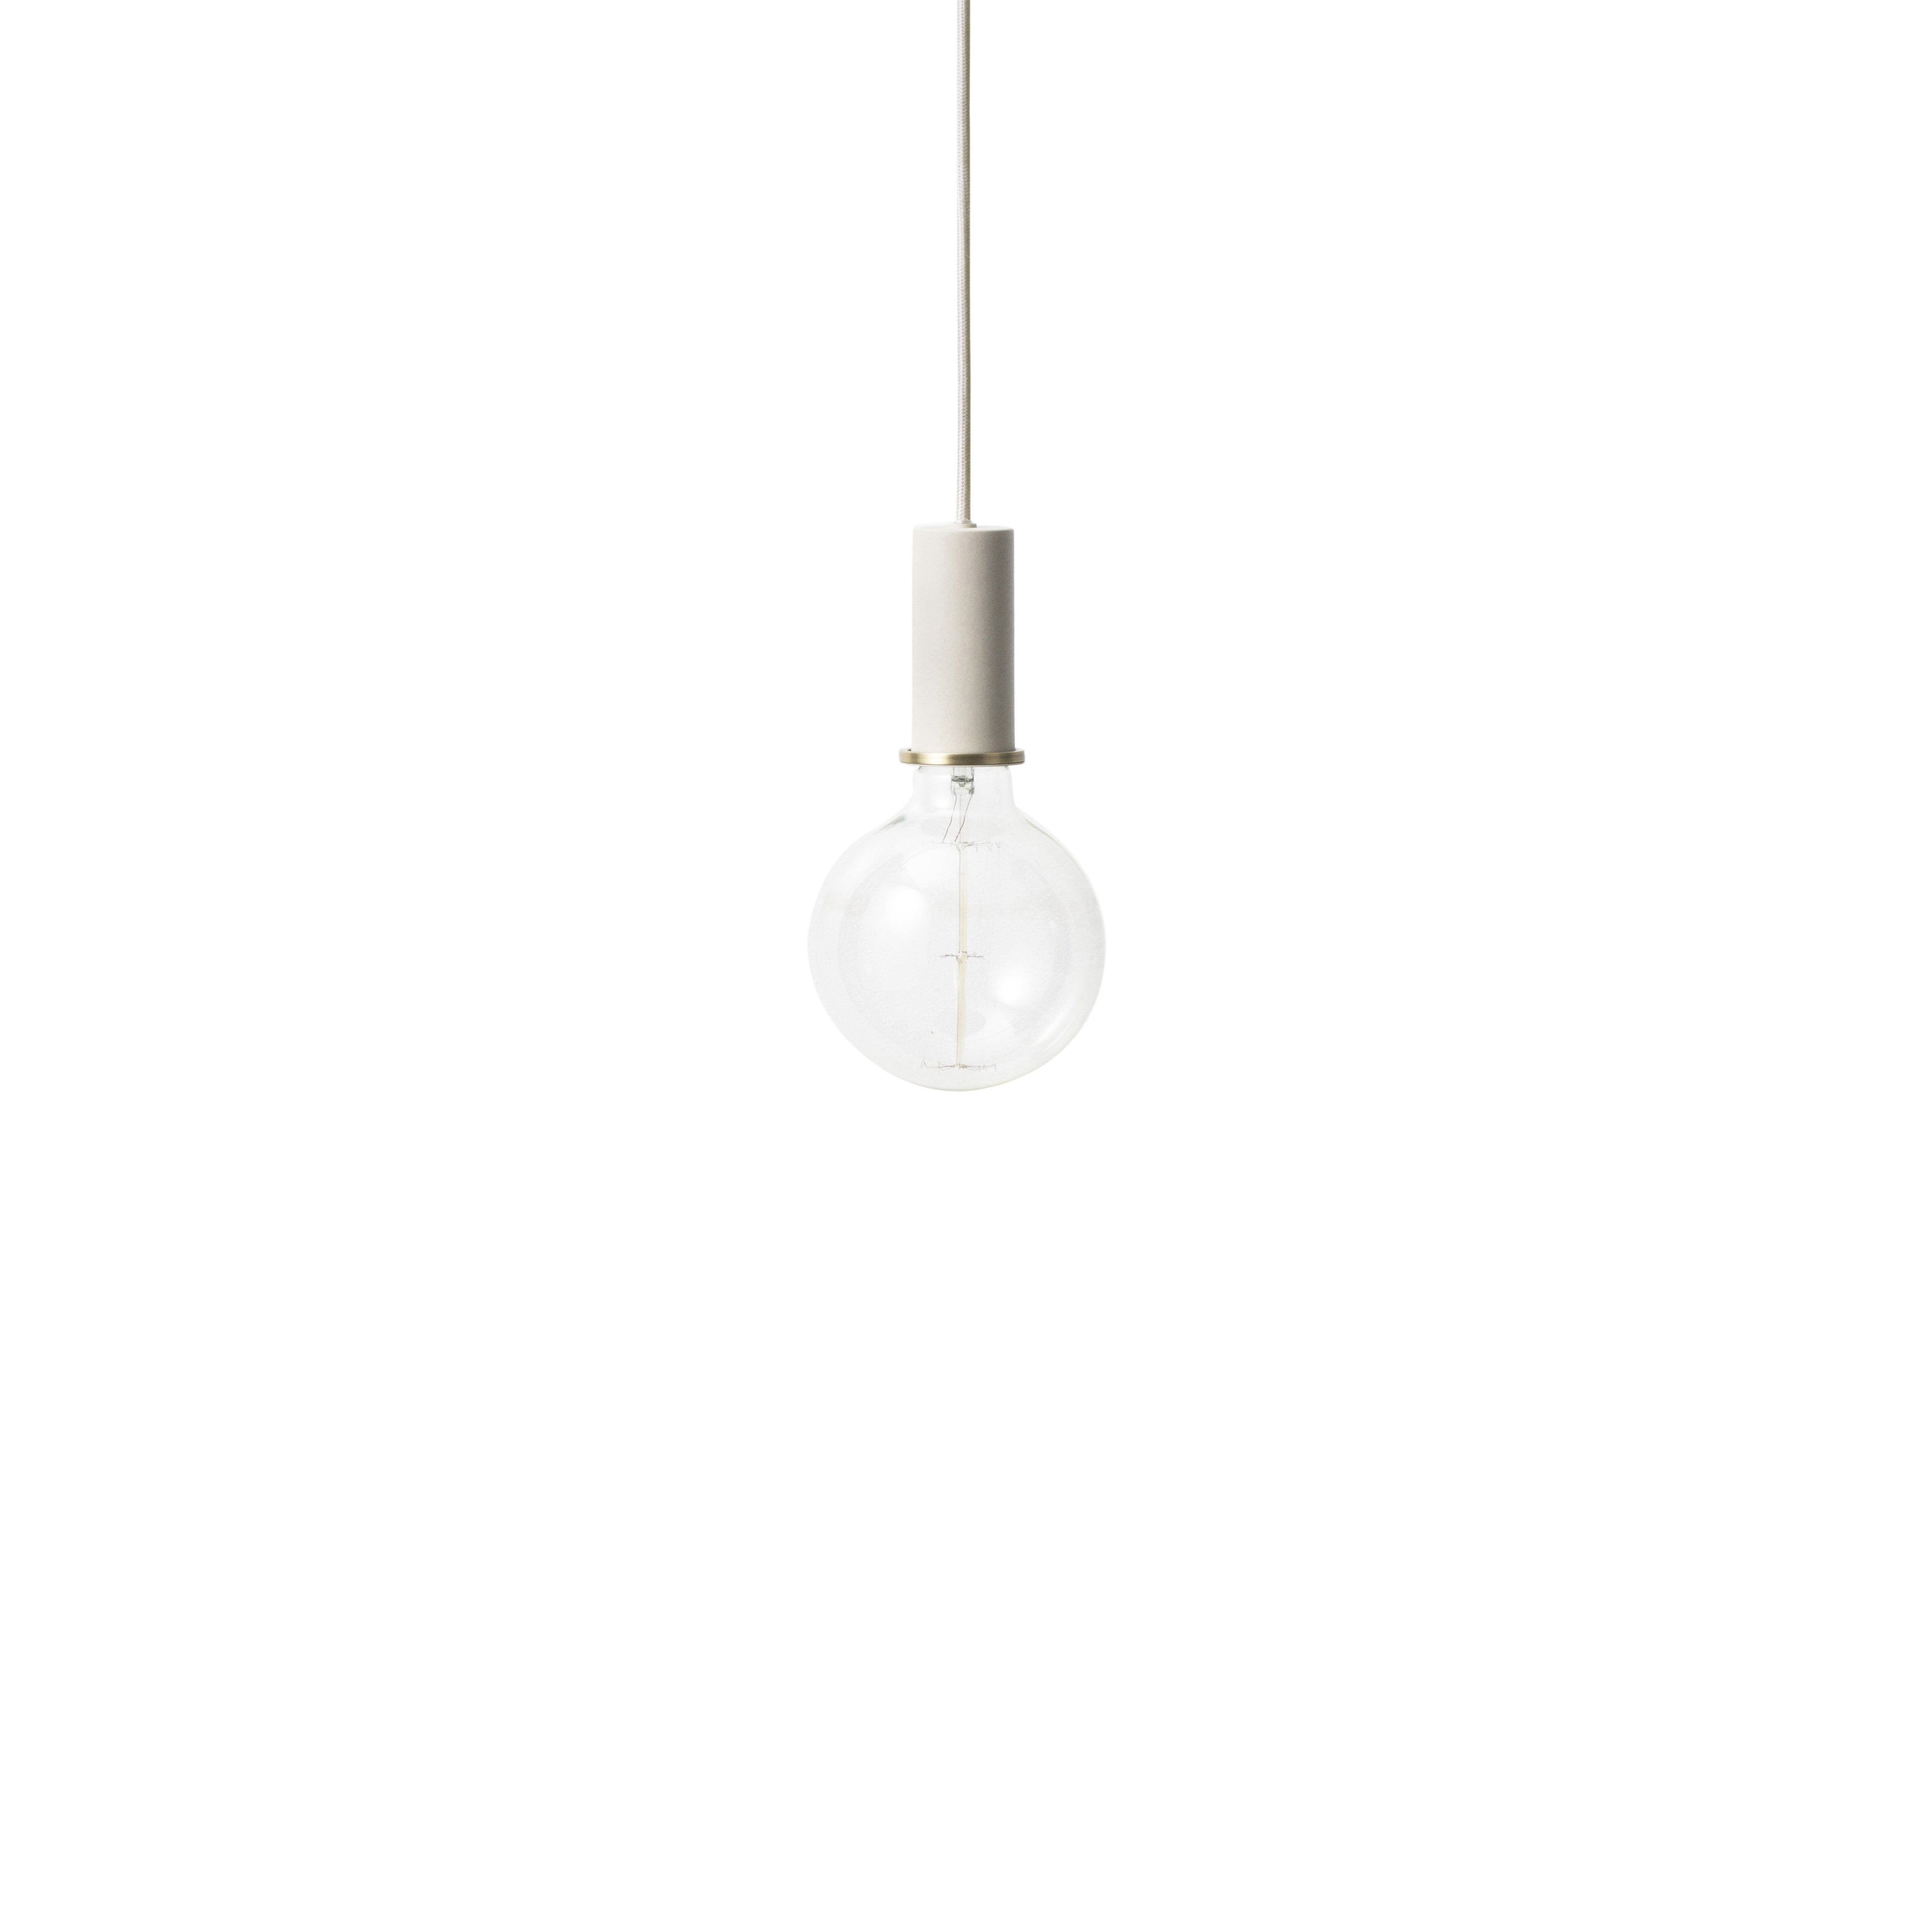 Collect Lighting: Pendant + Low + Light Grey